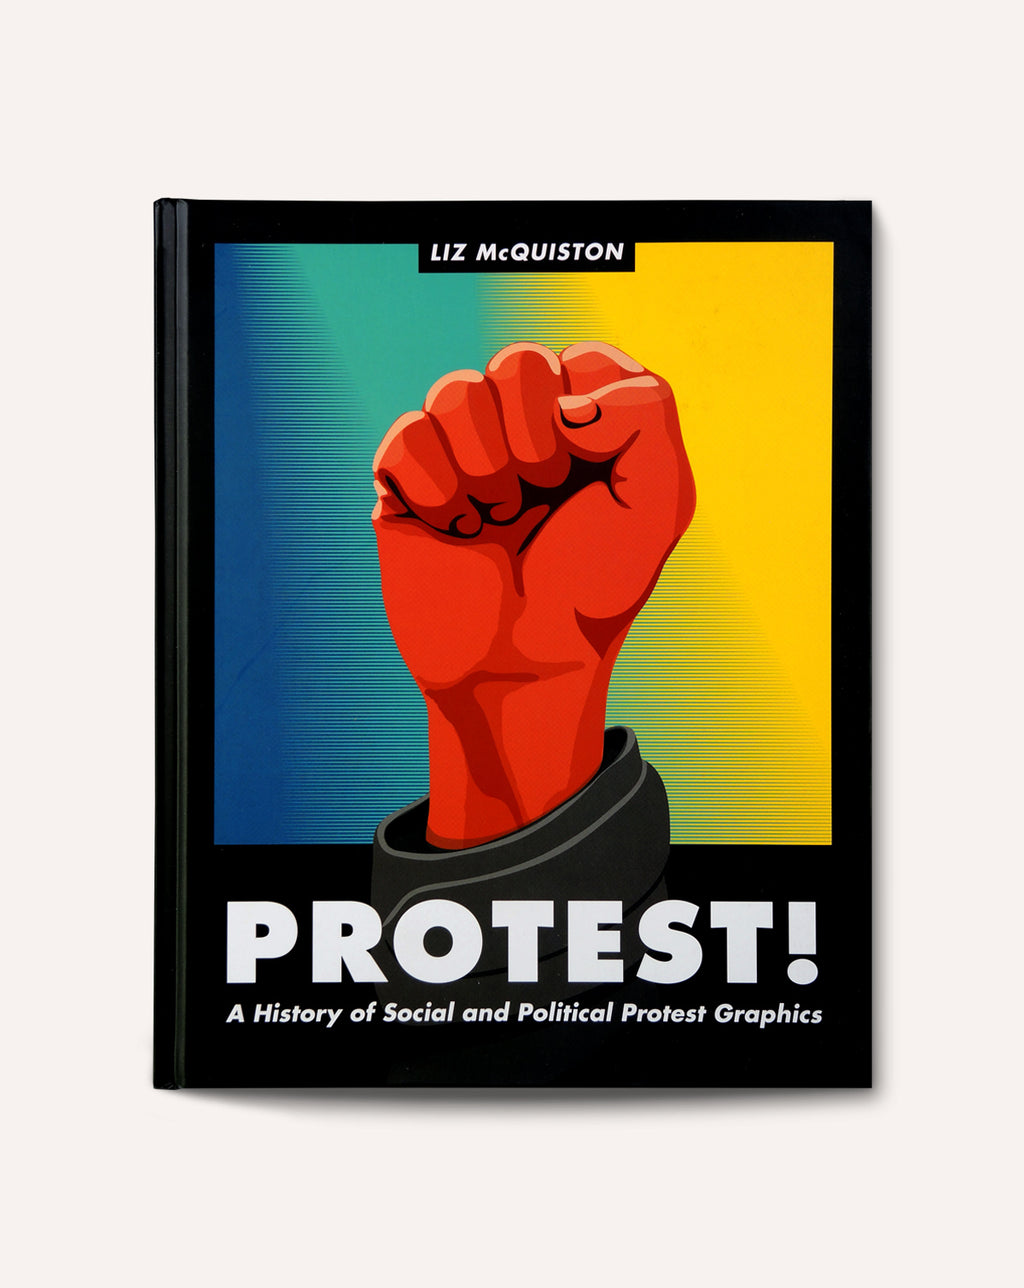 Protest!: A History of Social and Political Protest Graphics